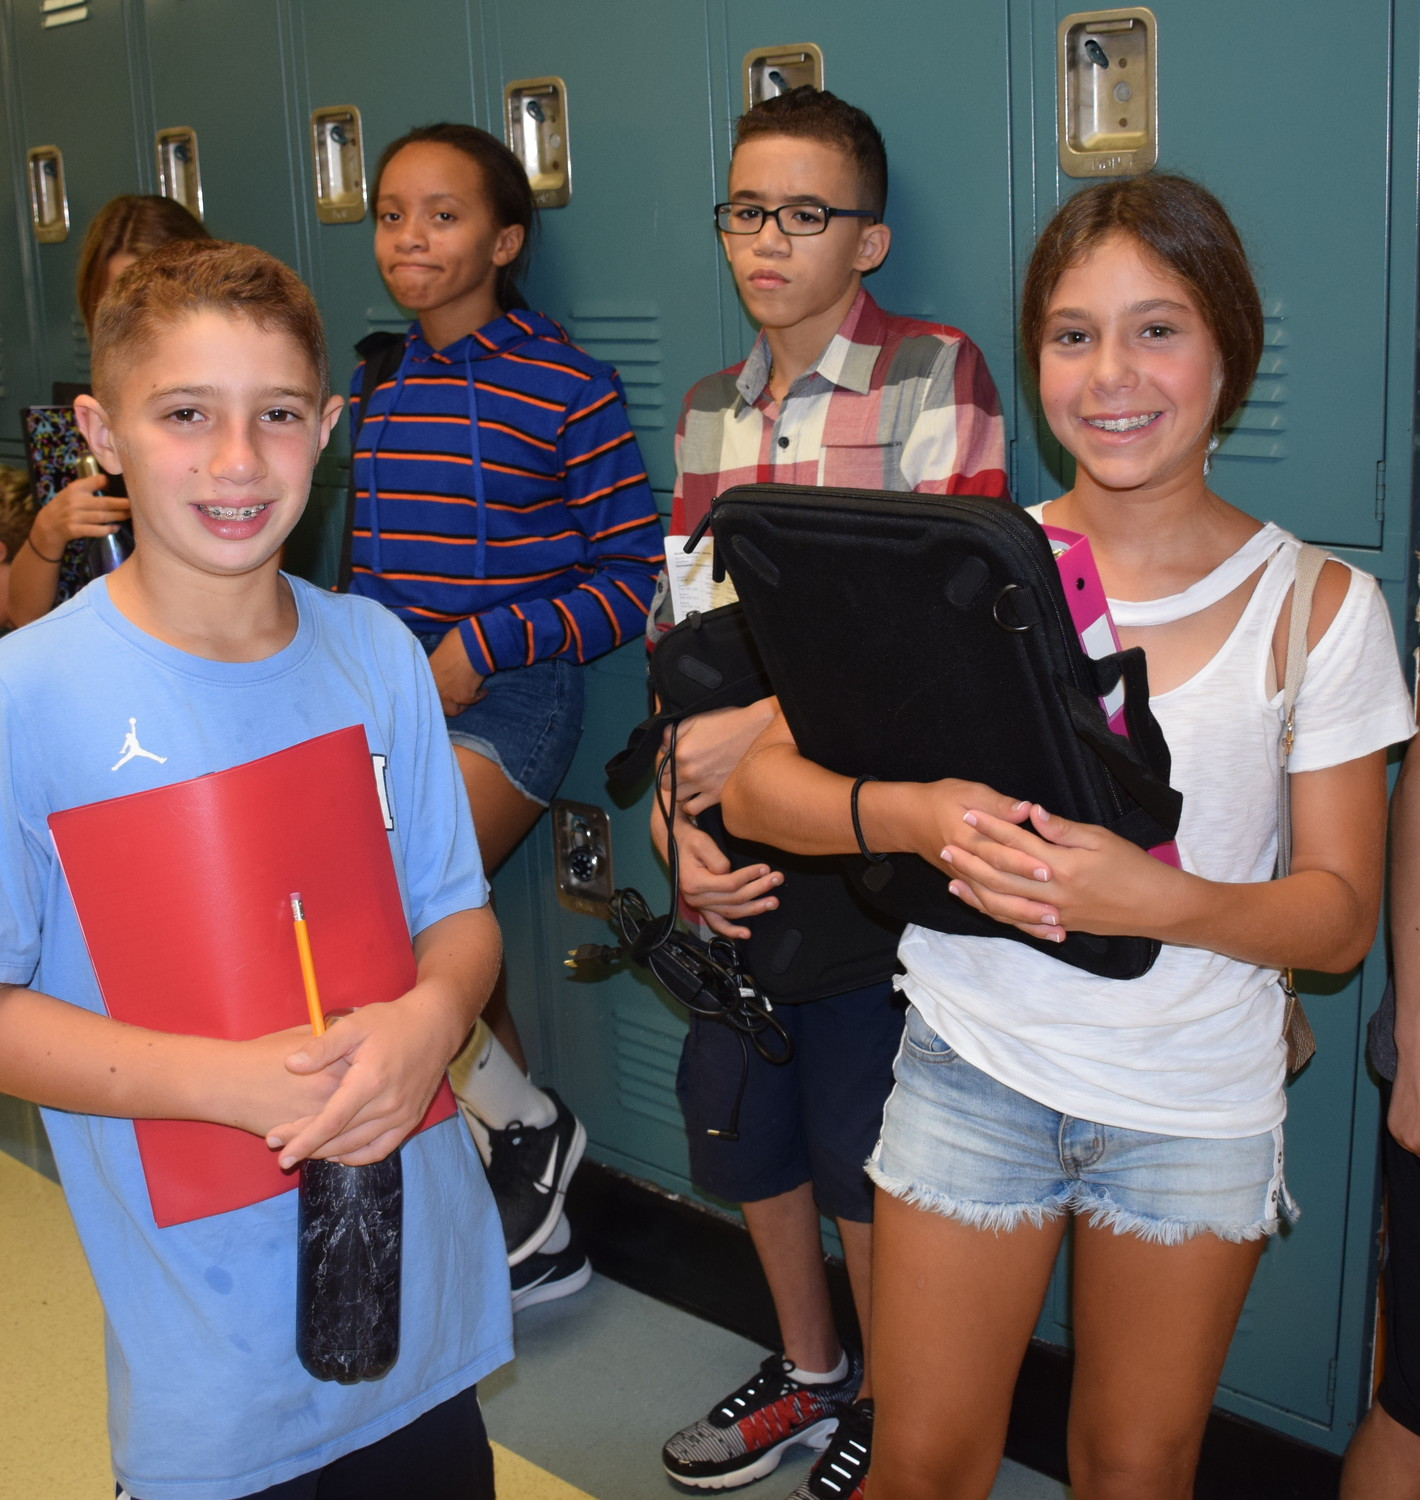 Jack Schare, Sklya Cooper, Jaeven Vasquez and Mia Schack on their first day back at Long Beach Middle School.